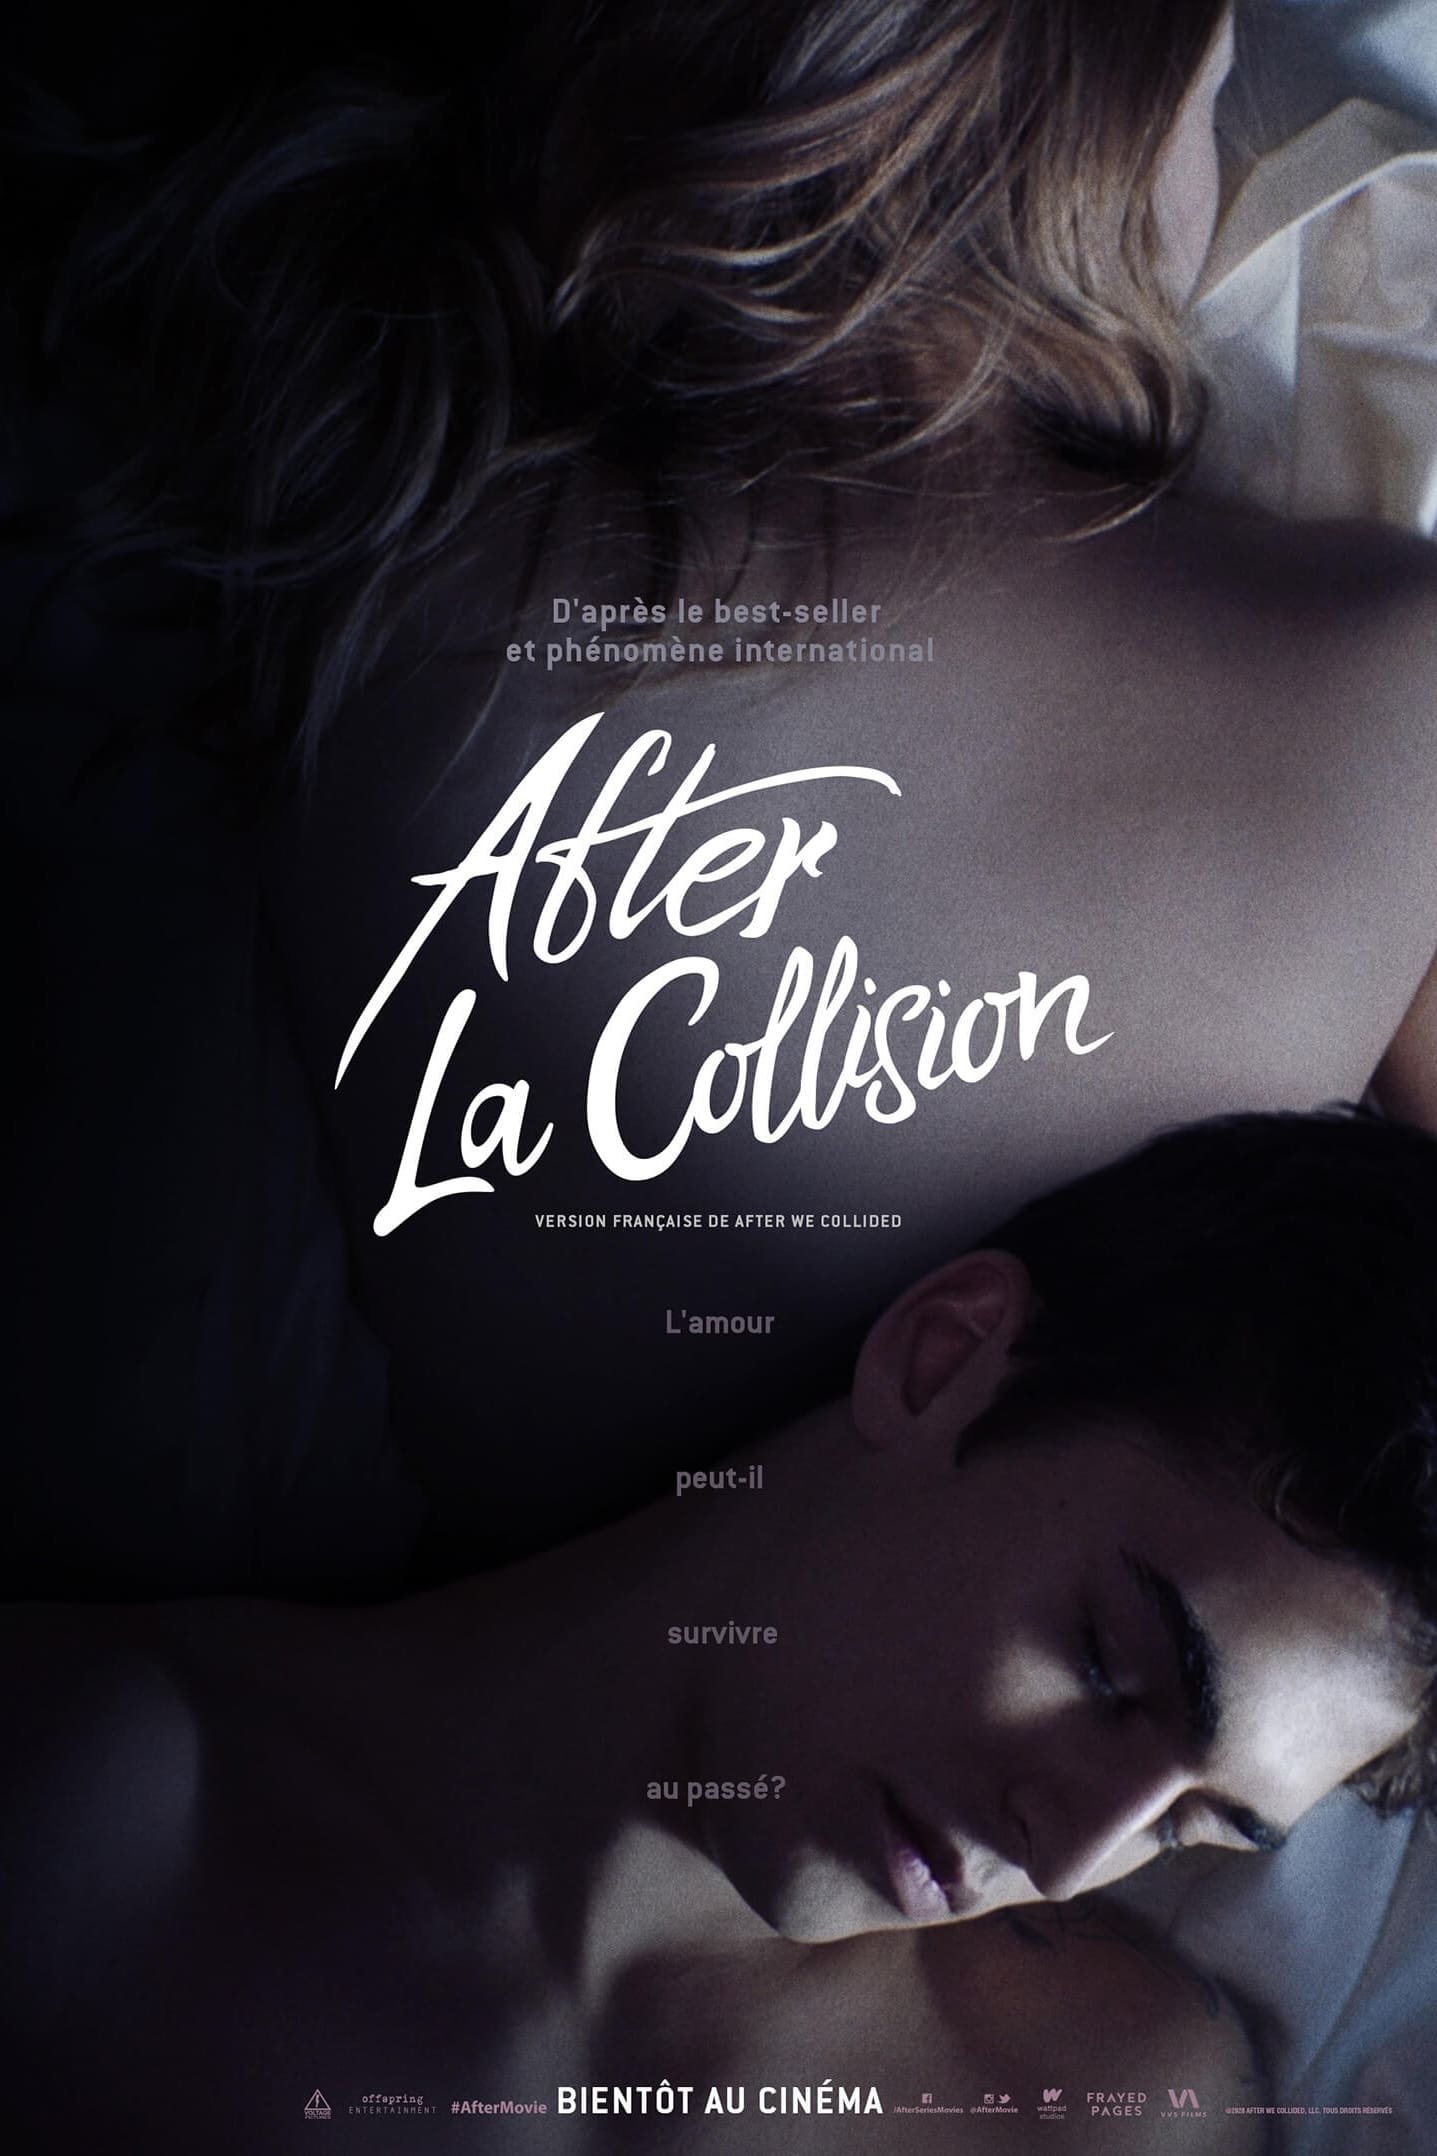 After - Chapitre 2 streaming sur libertyvf